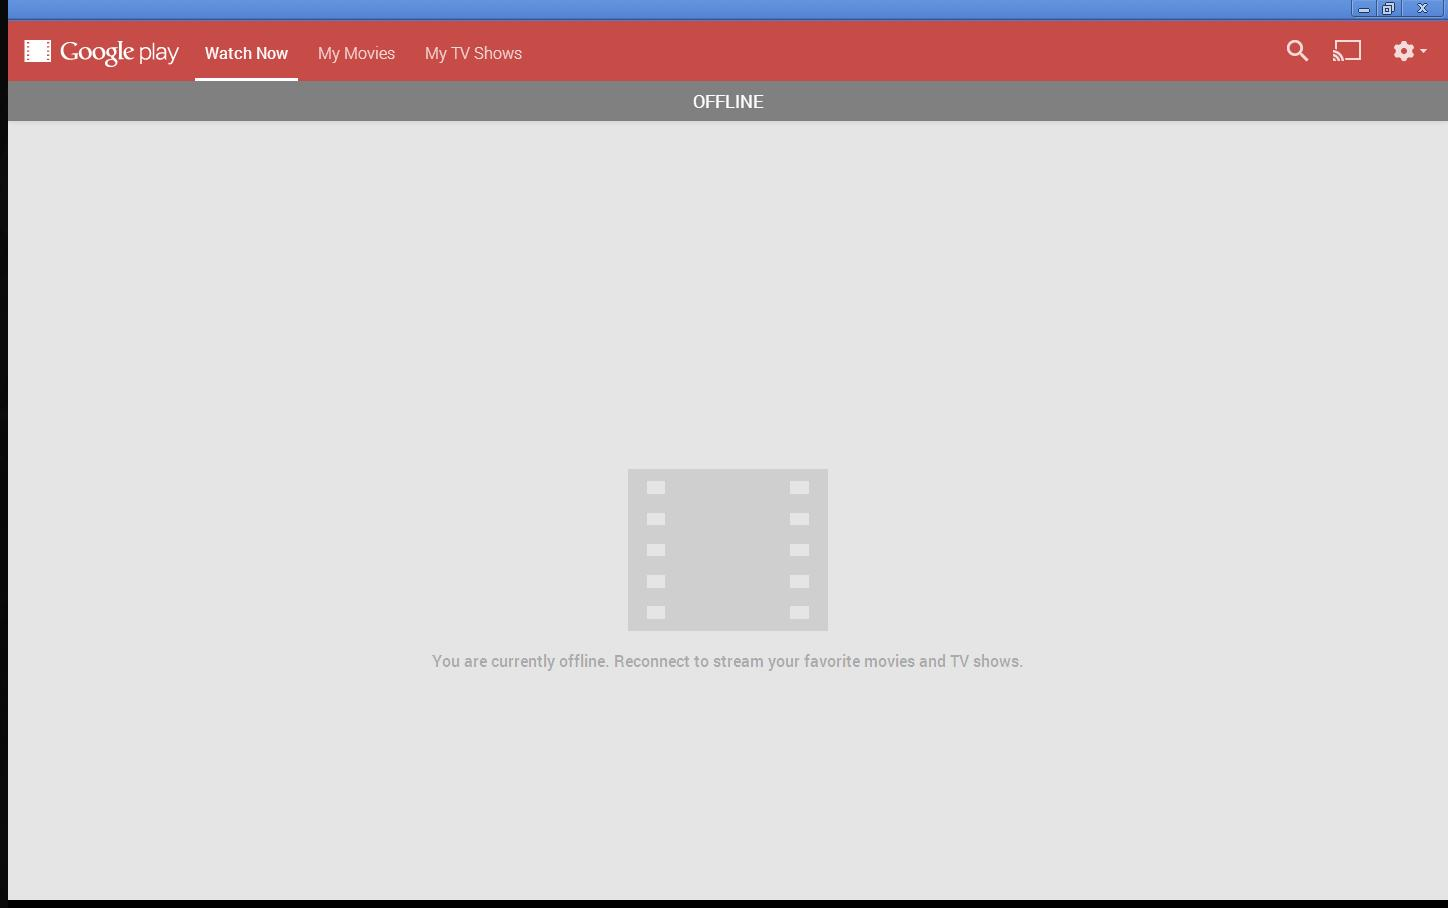 Stuck in offline mode when logging into Play Movies